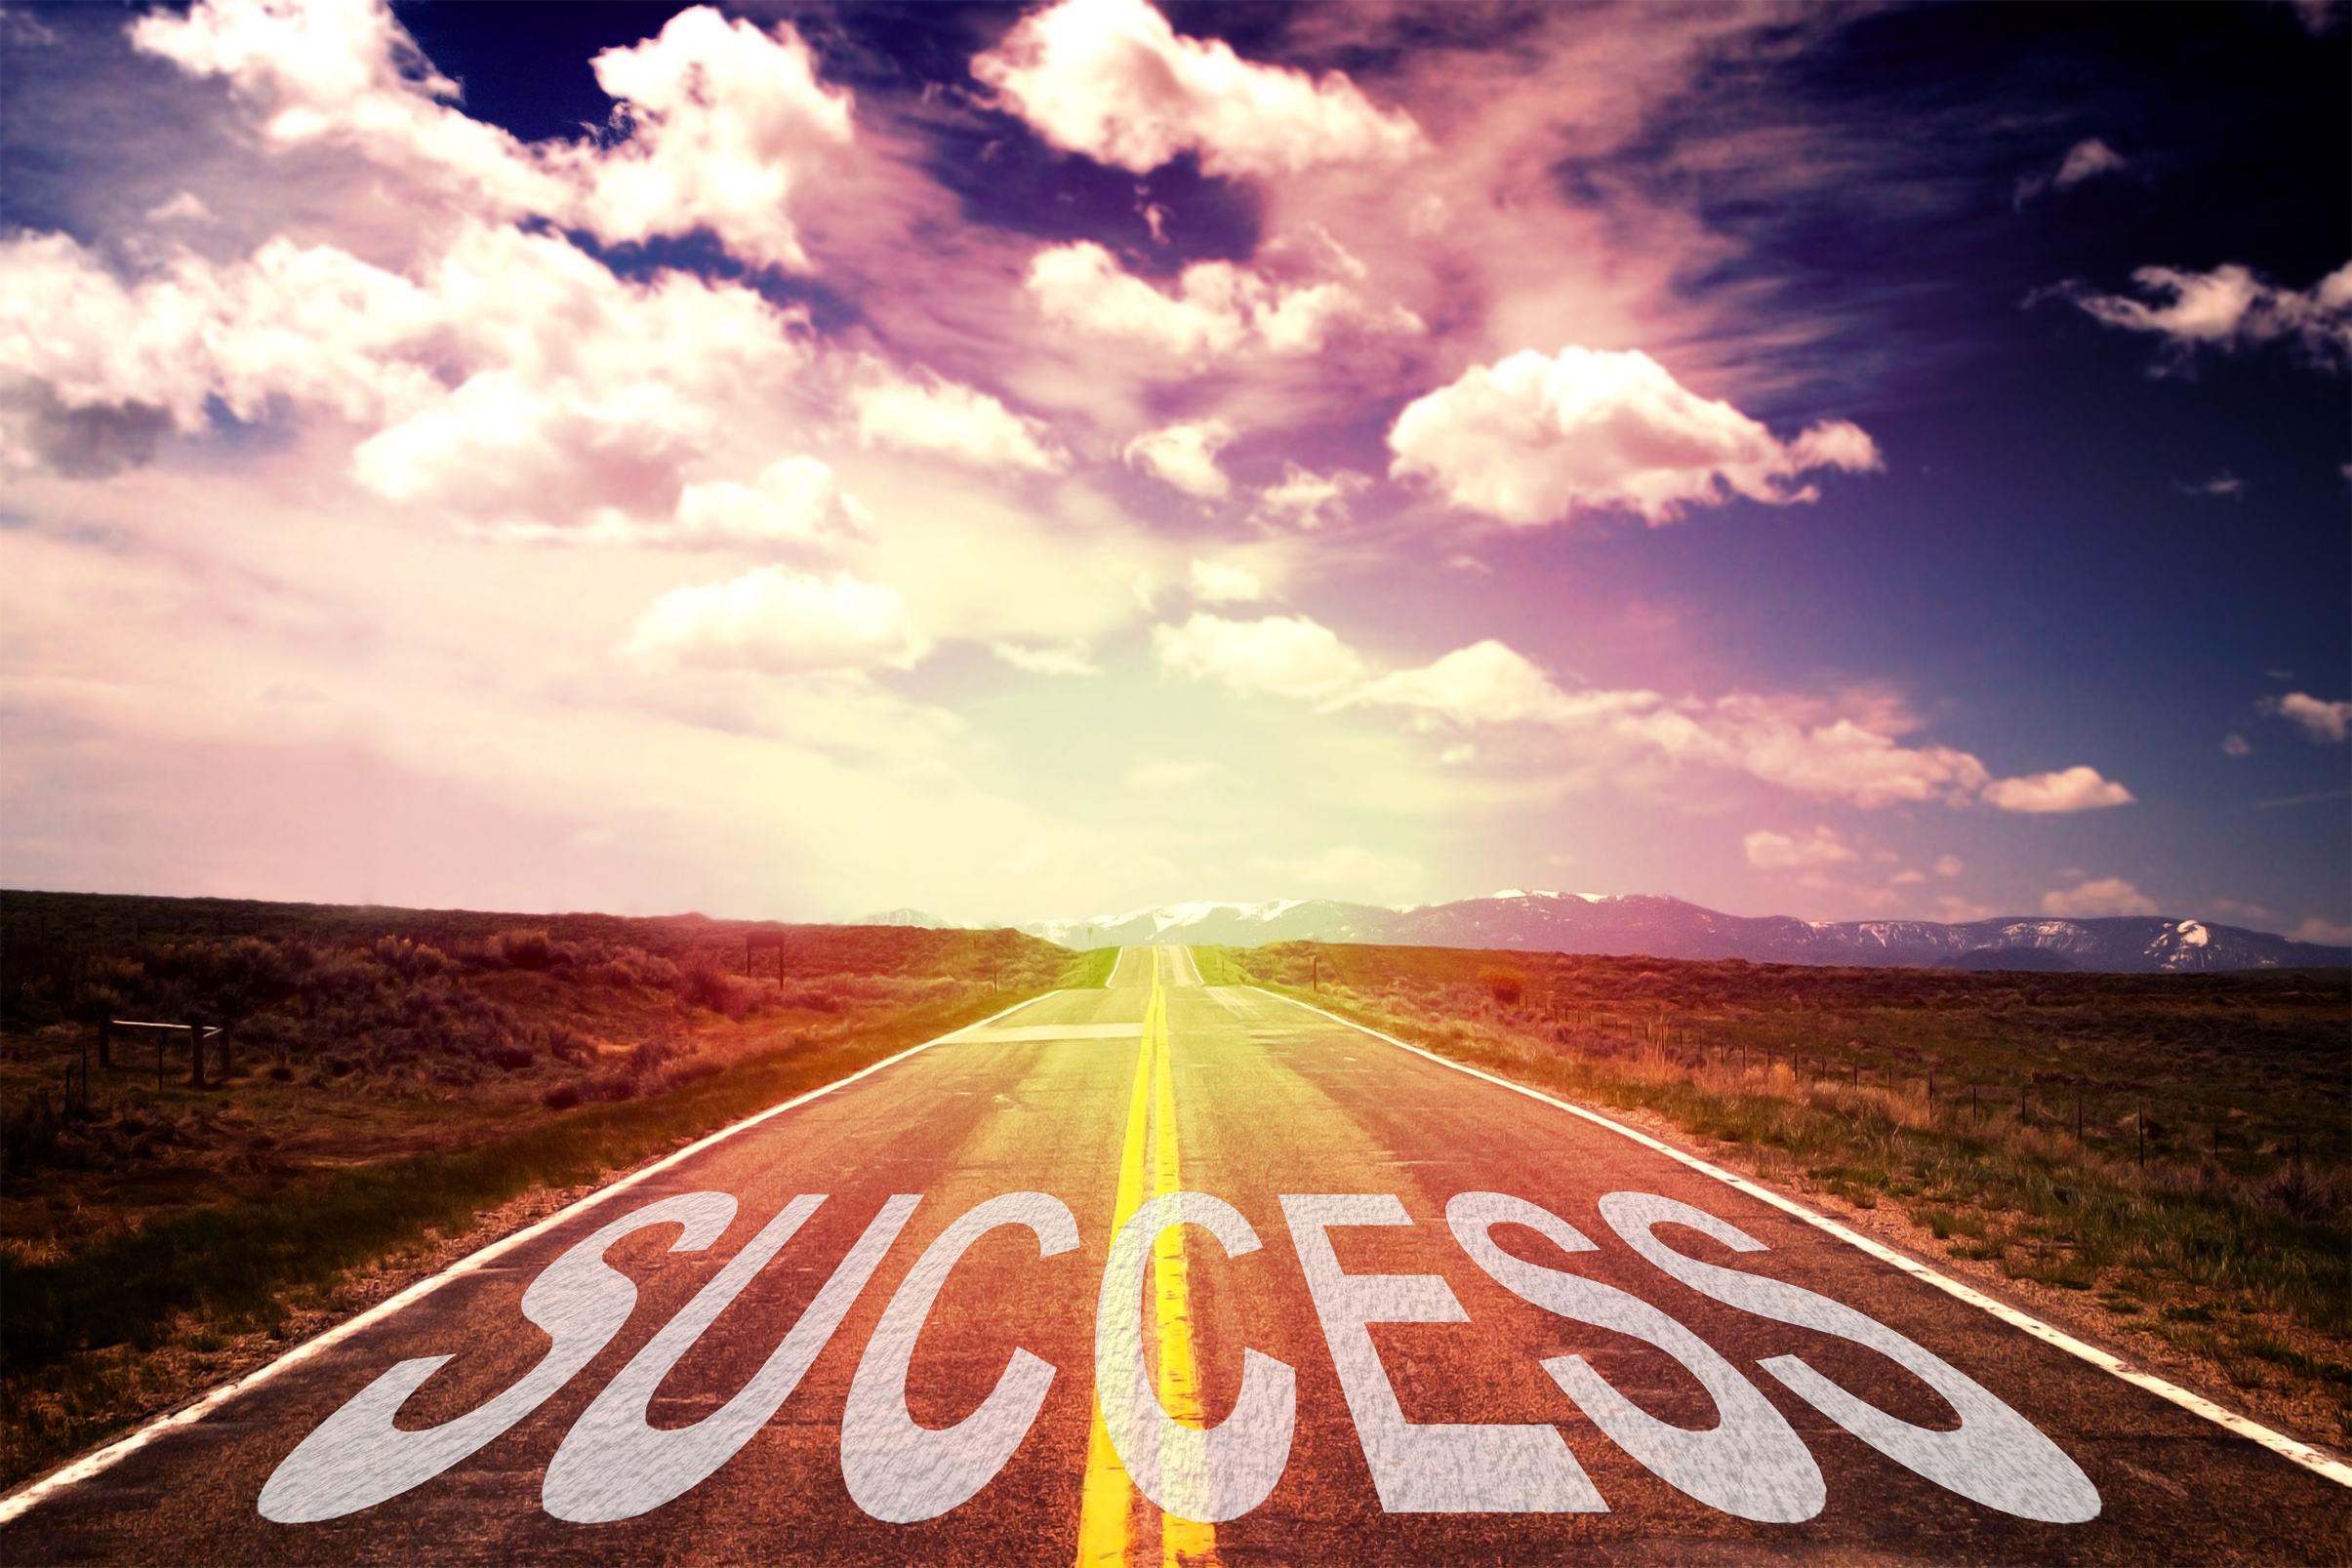 The road to success photo